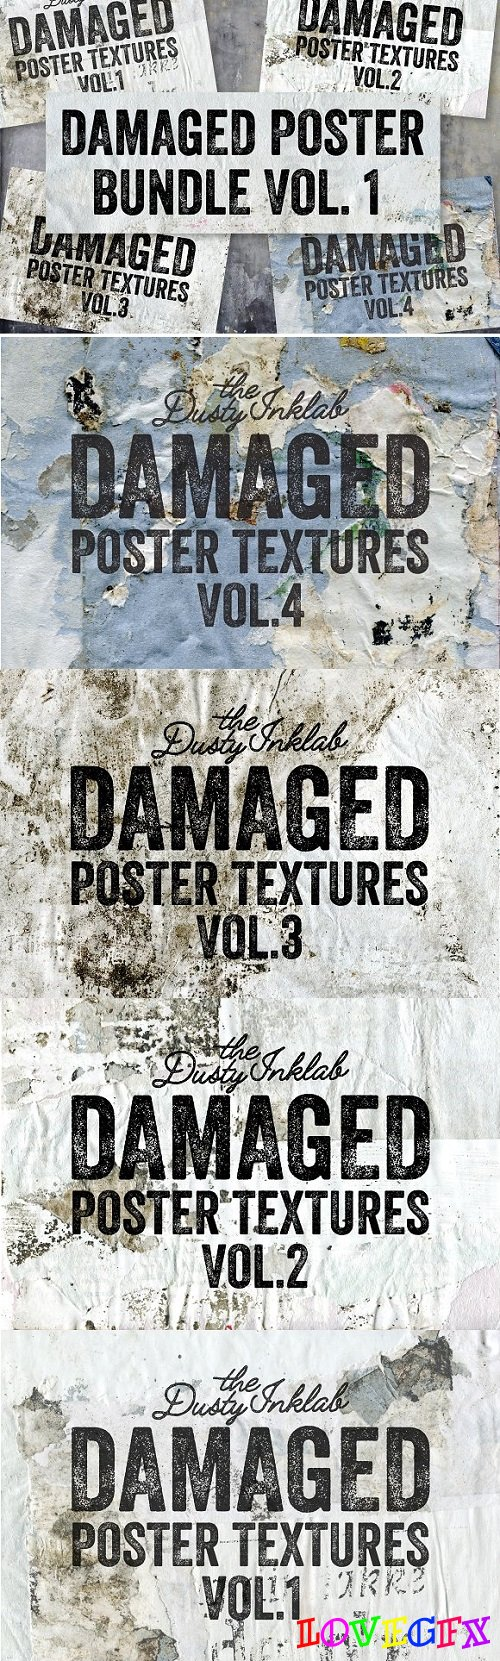 Damaged Poster Bundle Vol. 1 2228760